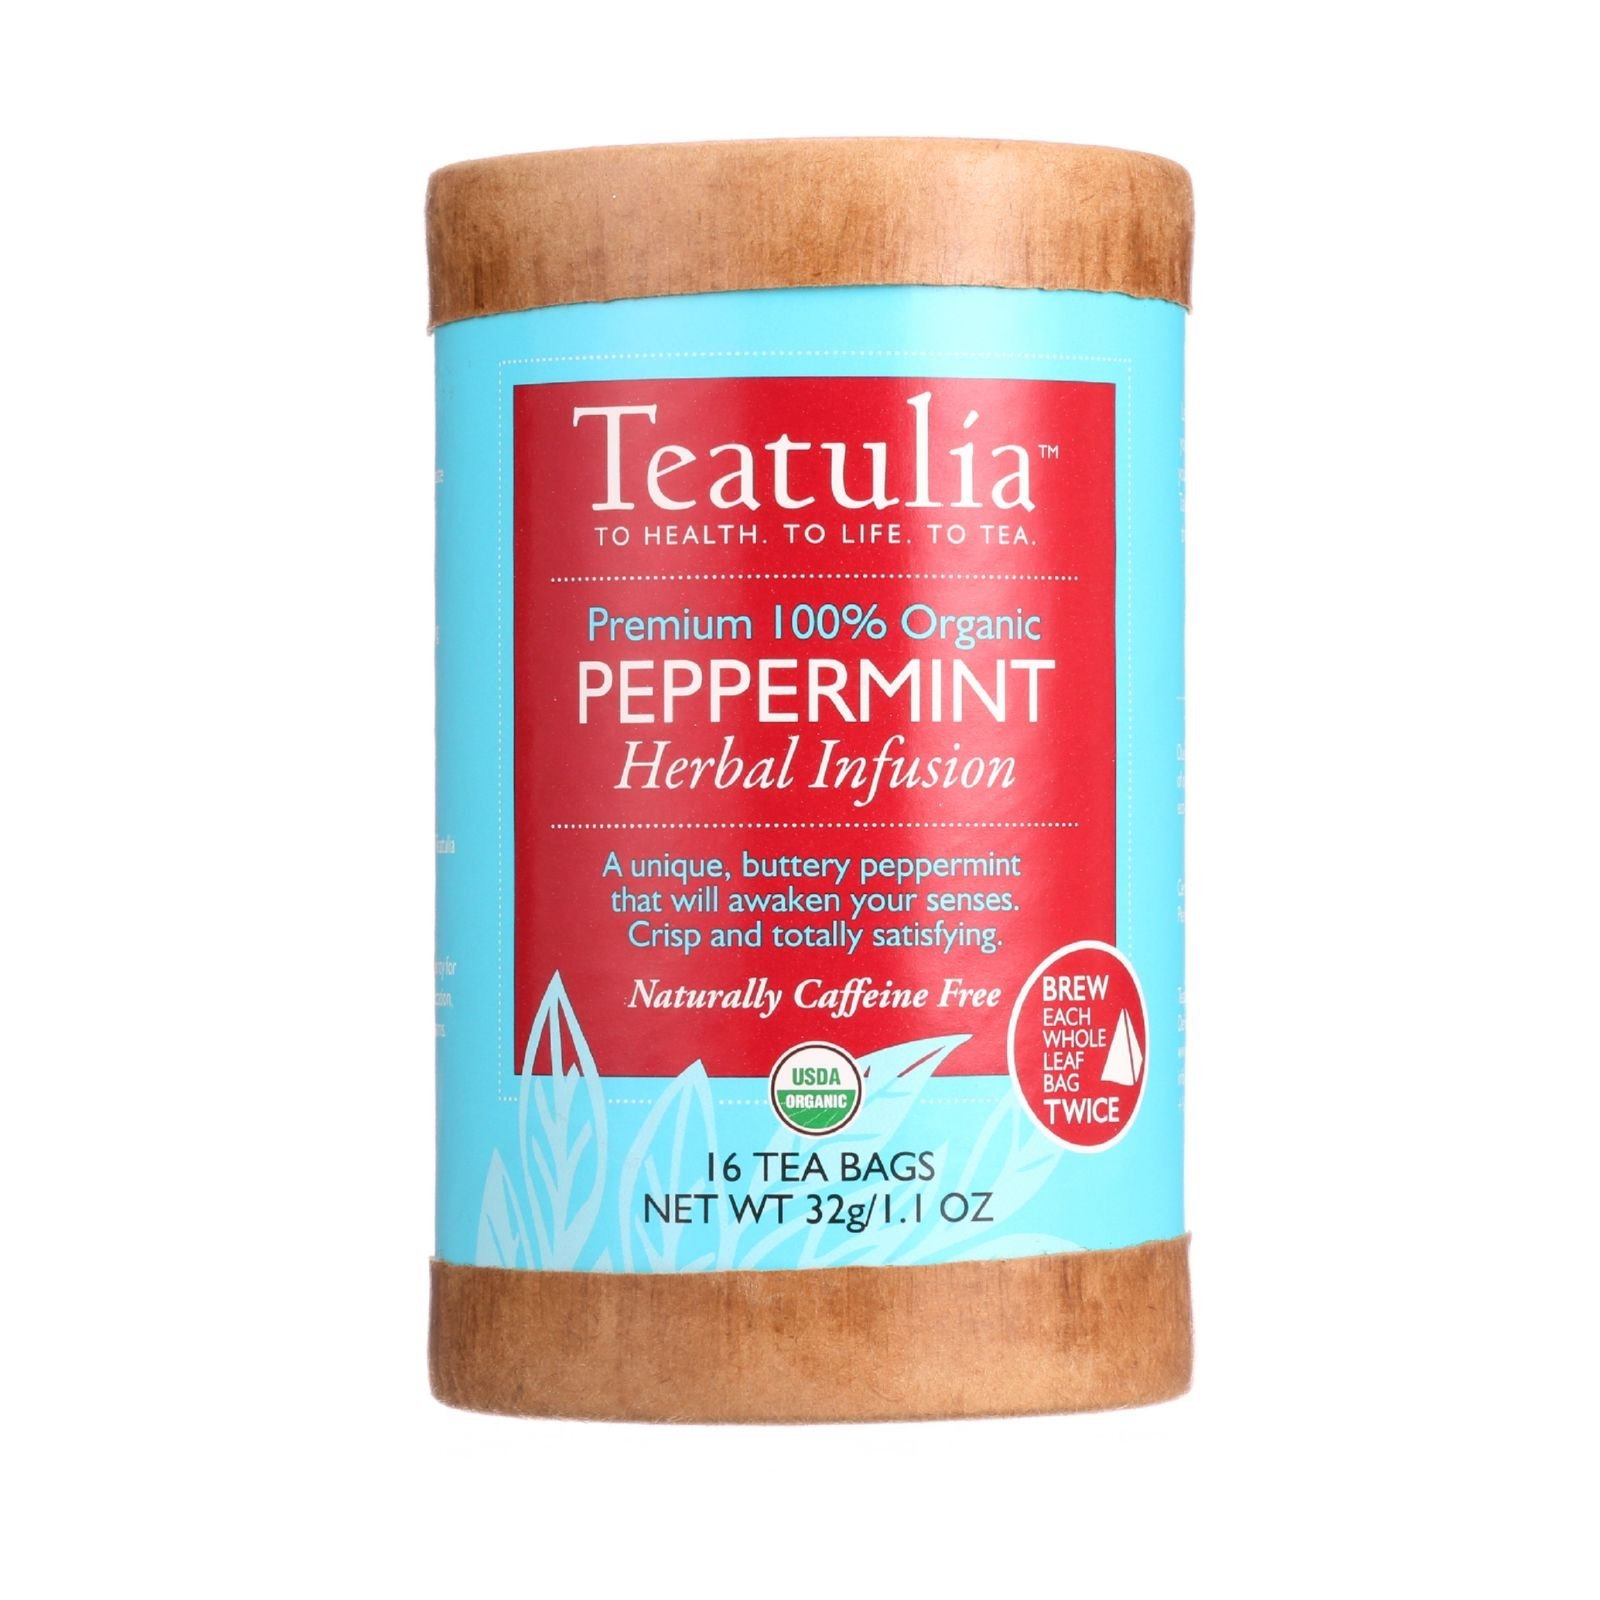 Teatulia Tea Organic Herbal Peppermint Eco-canister 16 Bags Case Of 6, 16 Count by Teatulia (Image #1)